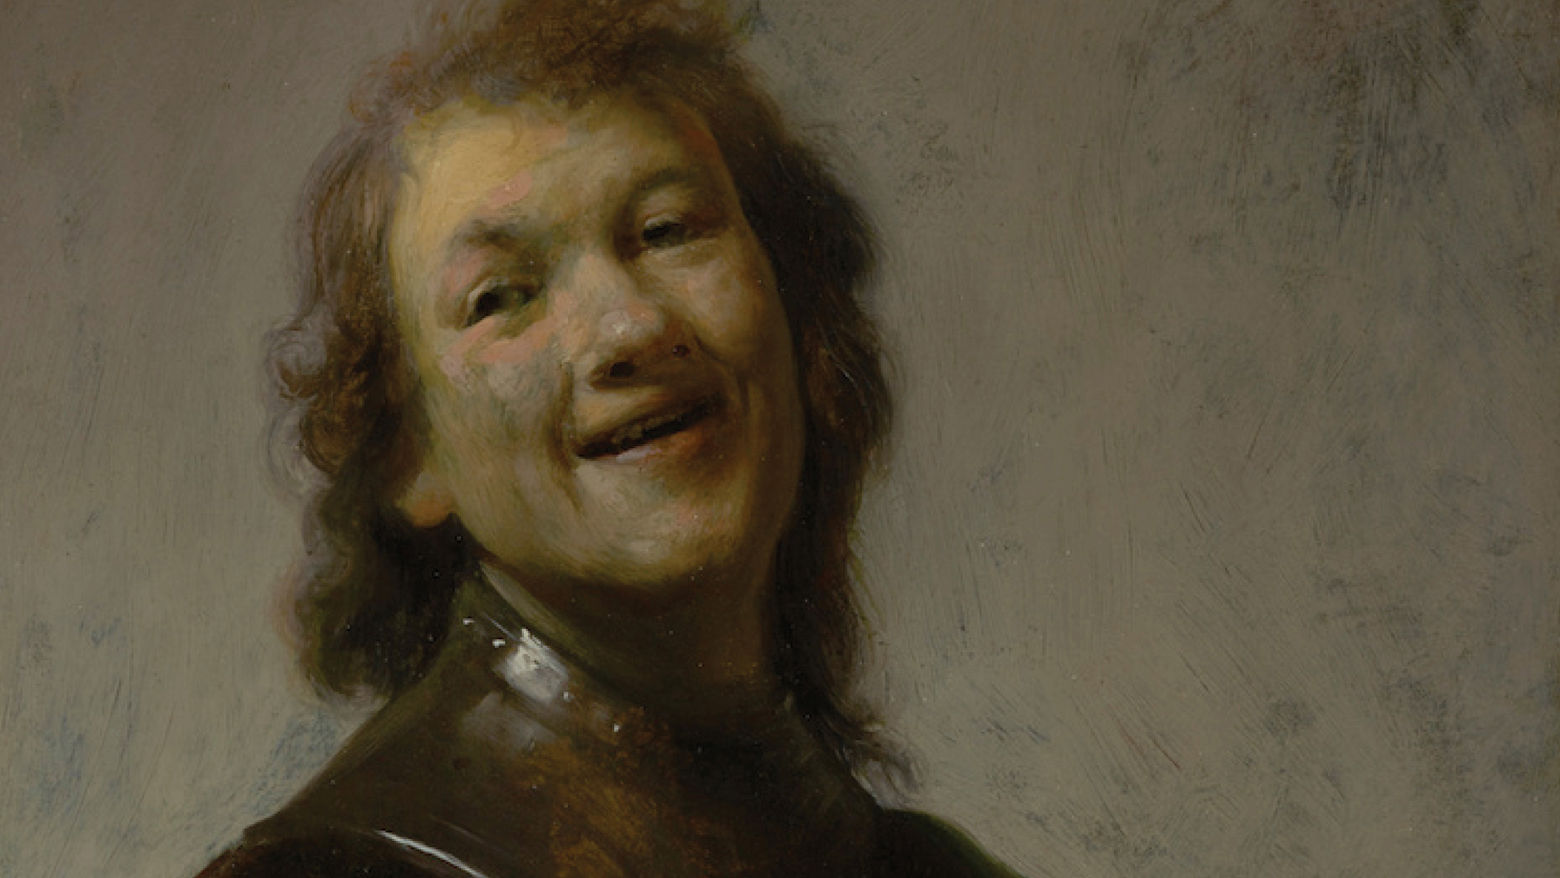 A painting showing a man laughing, depicting his head and shoulders